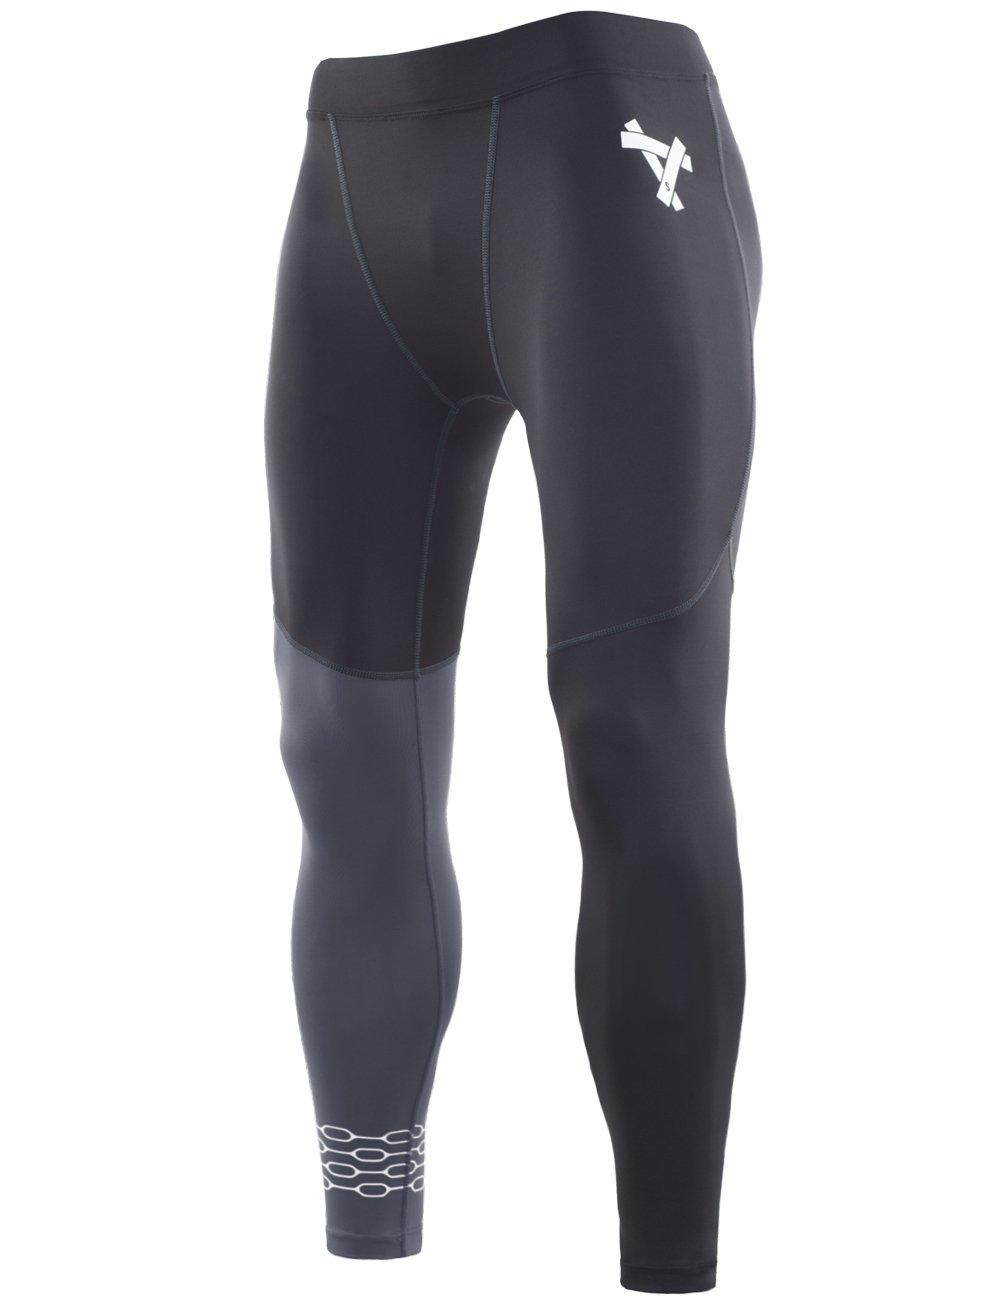 Lavento Men's Compression Pants Baselayer Cool Dry Running Ankle Leggings Active Tights (1 Pack-3909 Black/Gray,X-Large) by Lavento